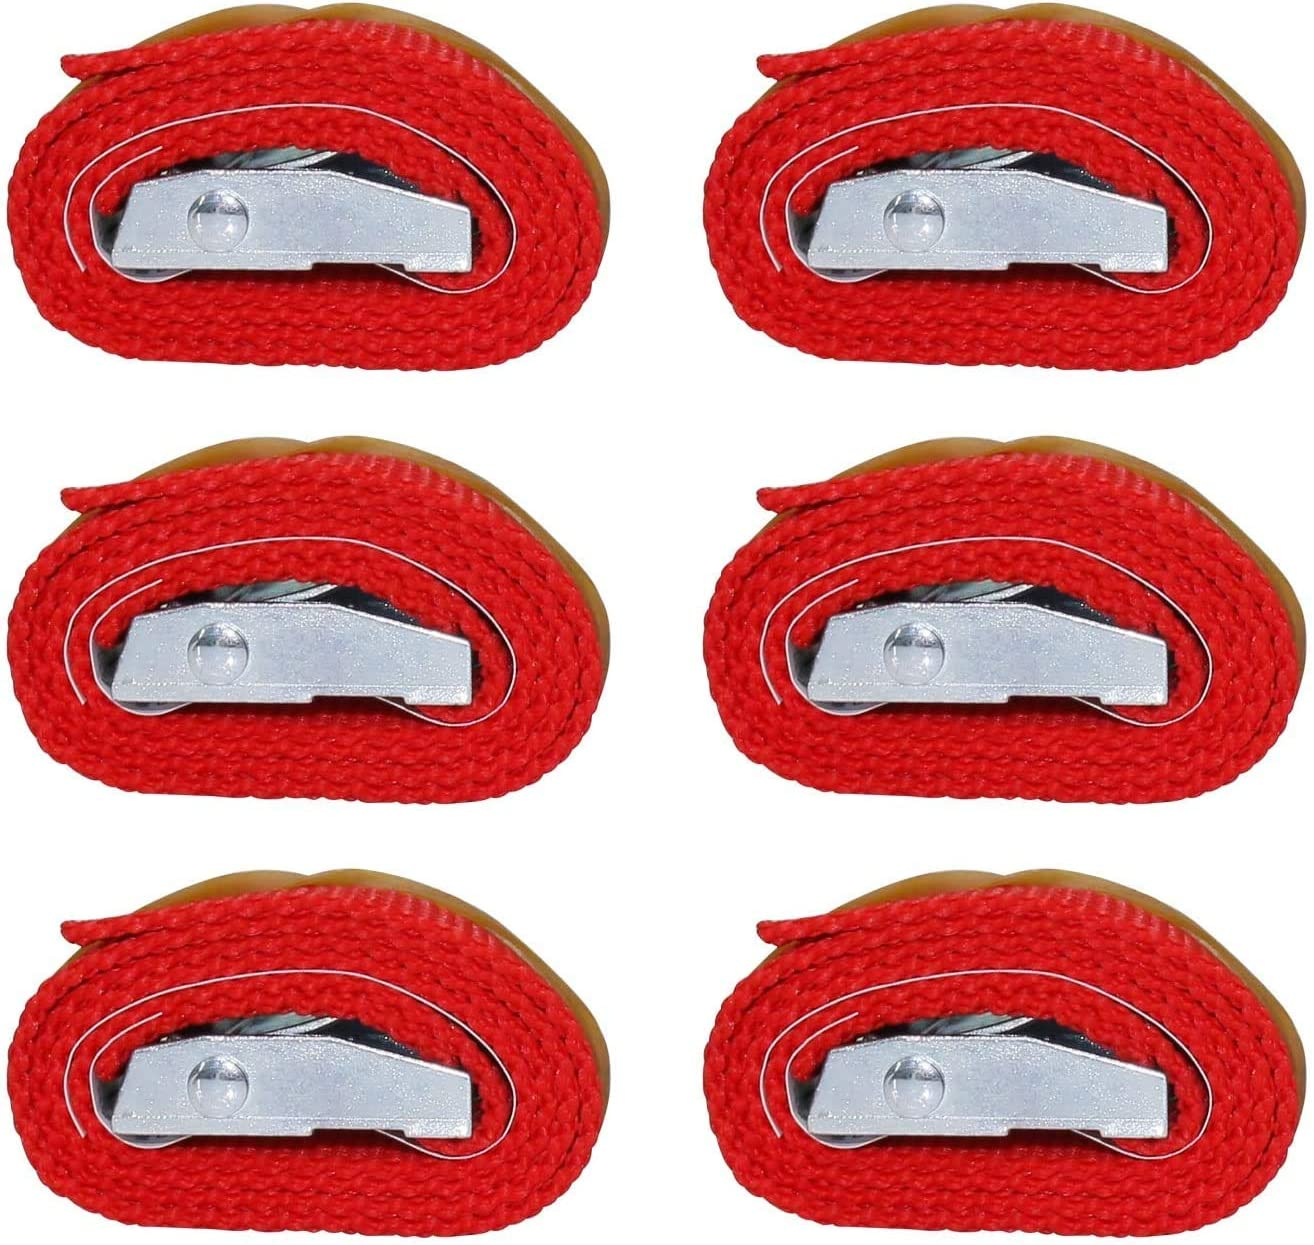 RilexAwhile Lashing Straps 2 Ft x 1 Inch Tie Down Straps up to 600lbs 6 Pack 1inch x 2ft, purple